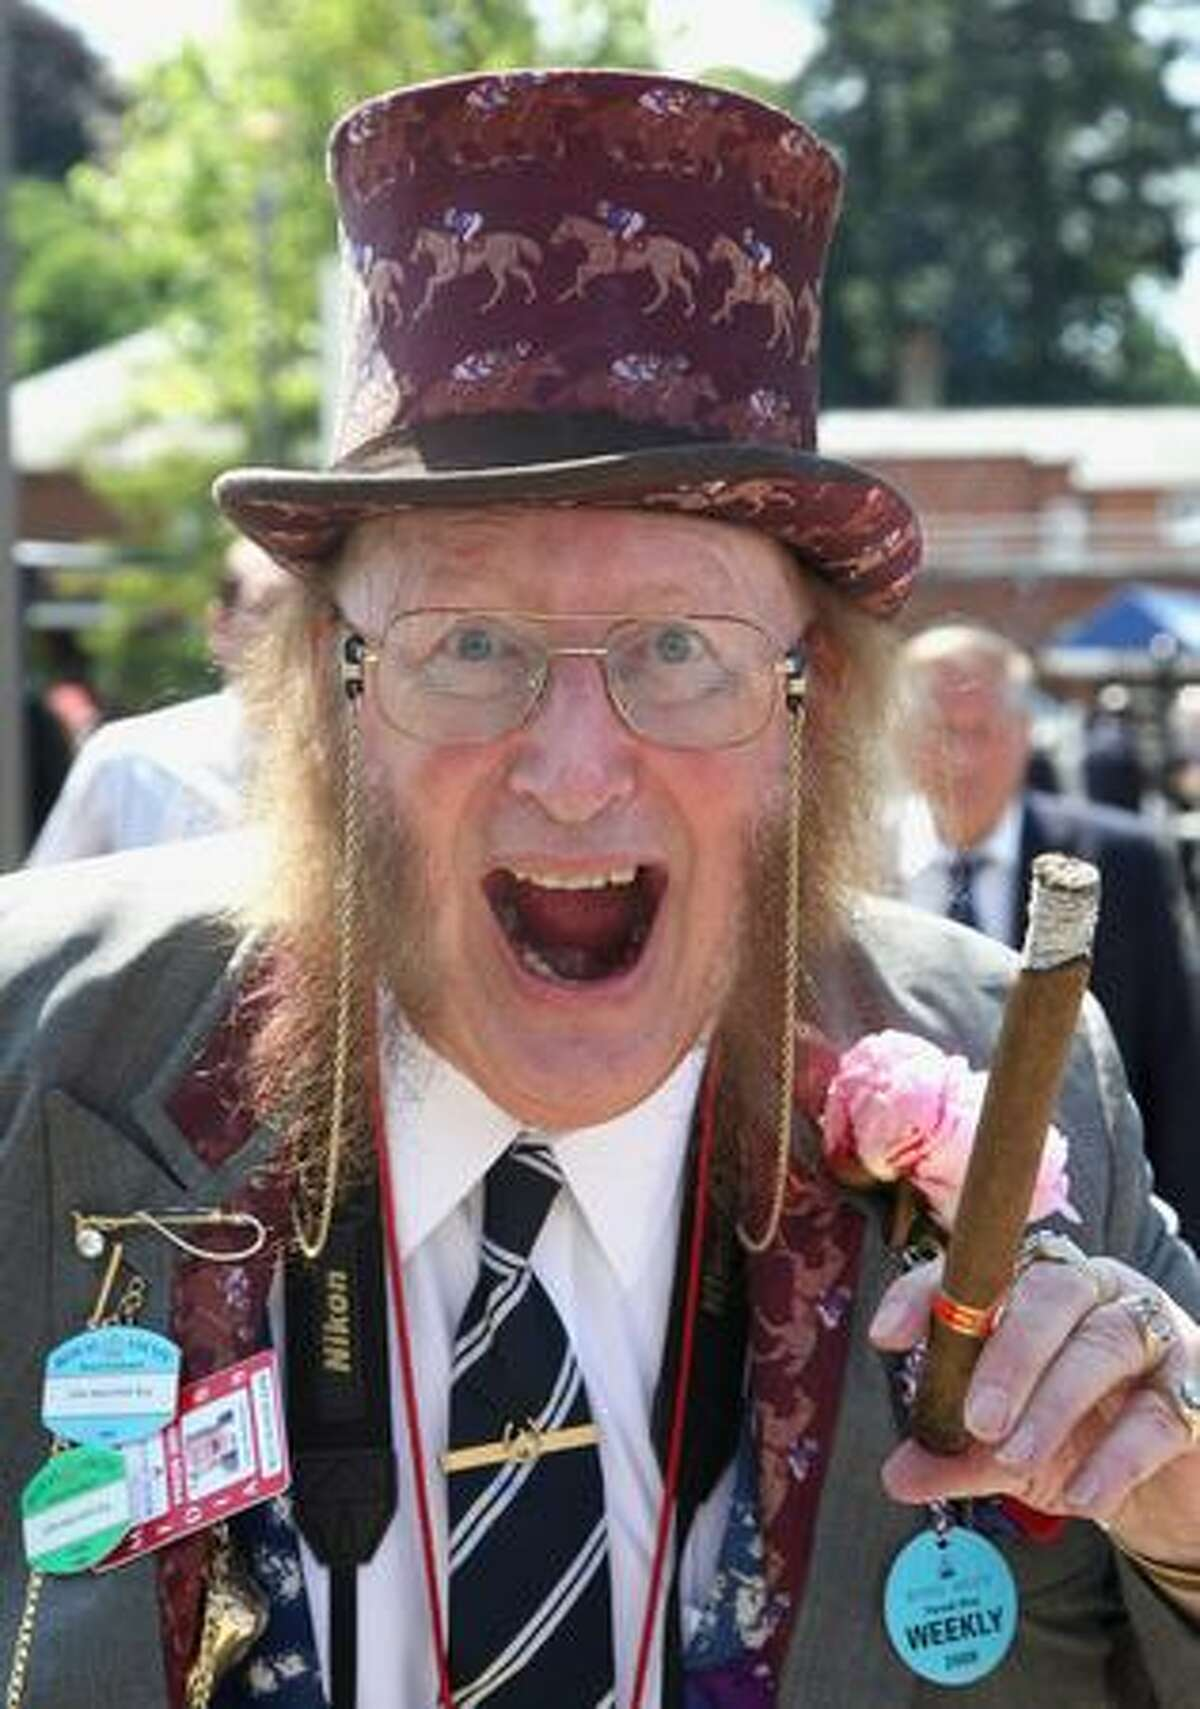 Racing pundit John McCririck poses on the first day of Royal Ascot 2009 at Ascot Racecourse in Ascot, England.